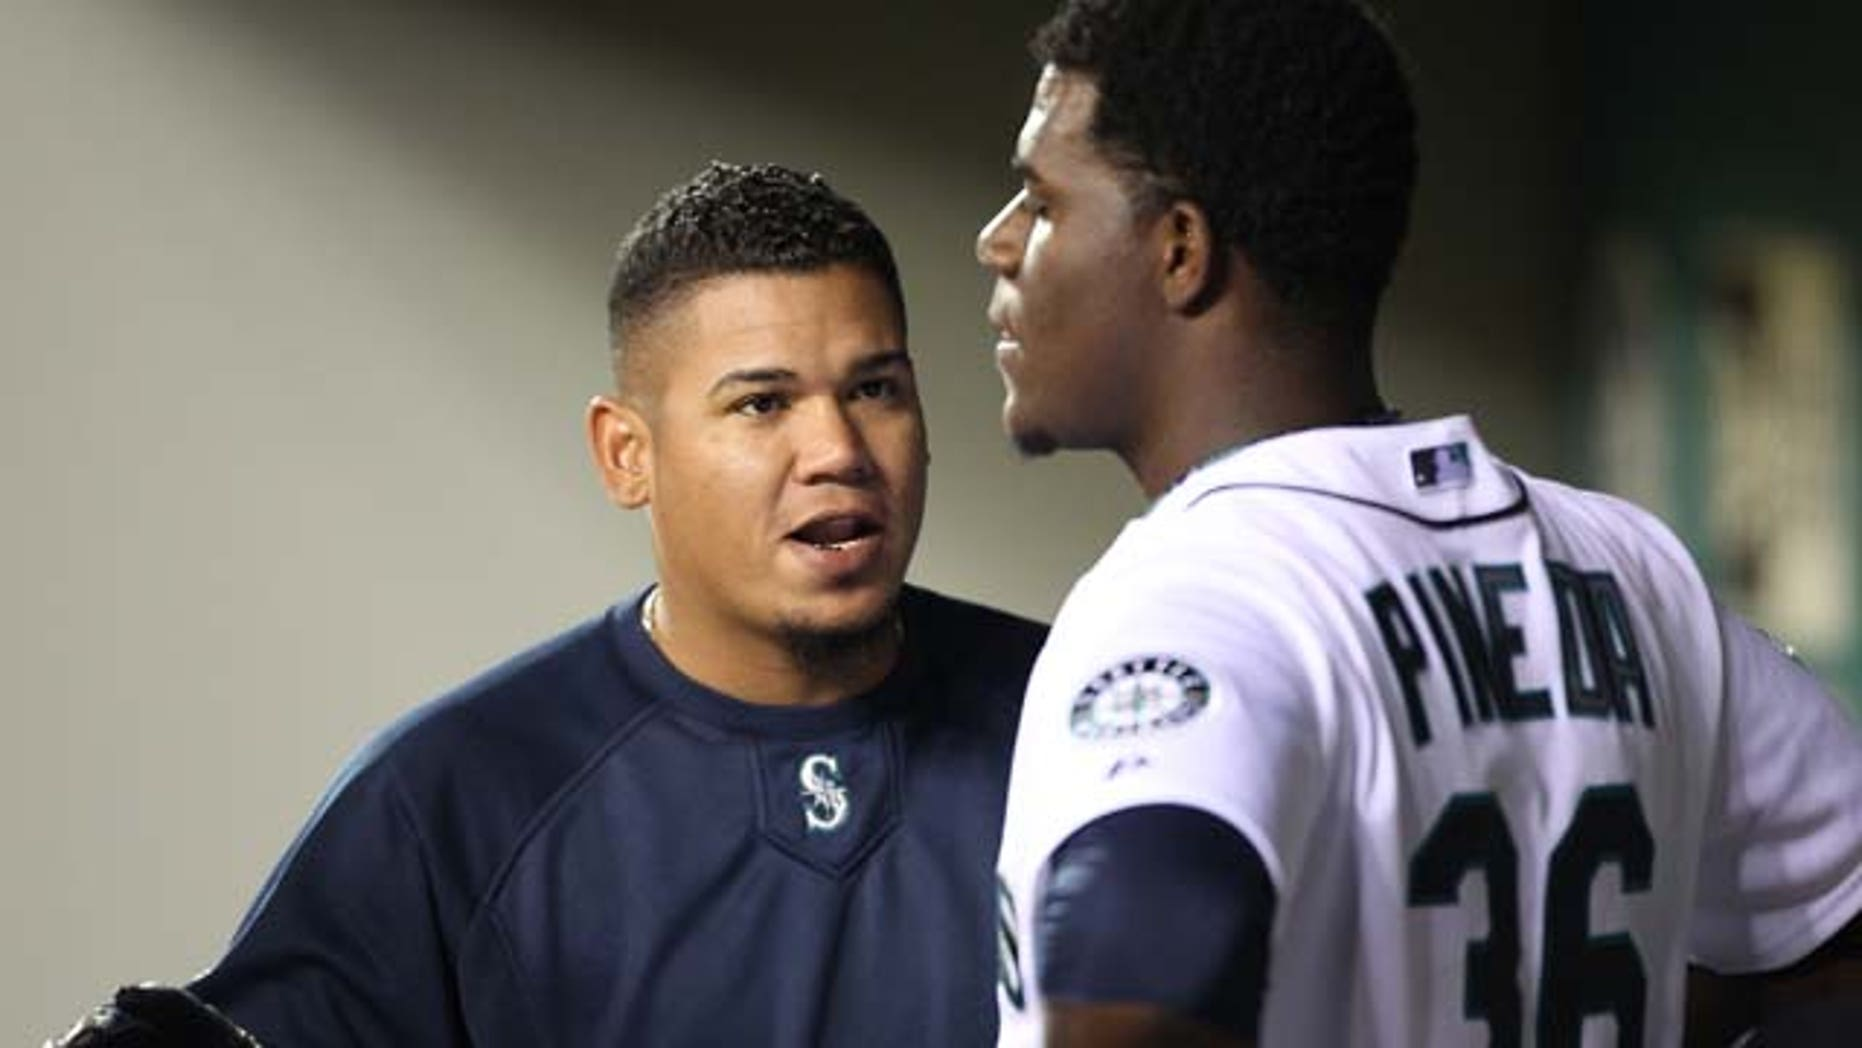 SEATTLE - APRIL 12:  Felix Hernandez #34 of the Seattle Mariners talks with starting pitcher Michael Pineda #36 after he was removed from the game in the eighth inning against the Toronto Blue Jays at Safeco Field on April 12, 2011 in Seattle, Washington. The Mariners defeated the Blue Jays 3-2, and Pineda was credited with the win. (Photo by Otto Greule Jr/Getty Images)